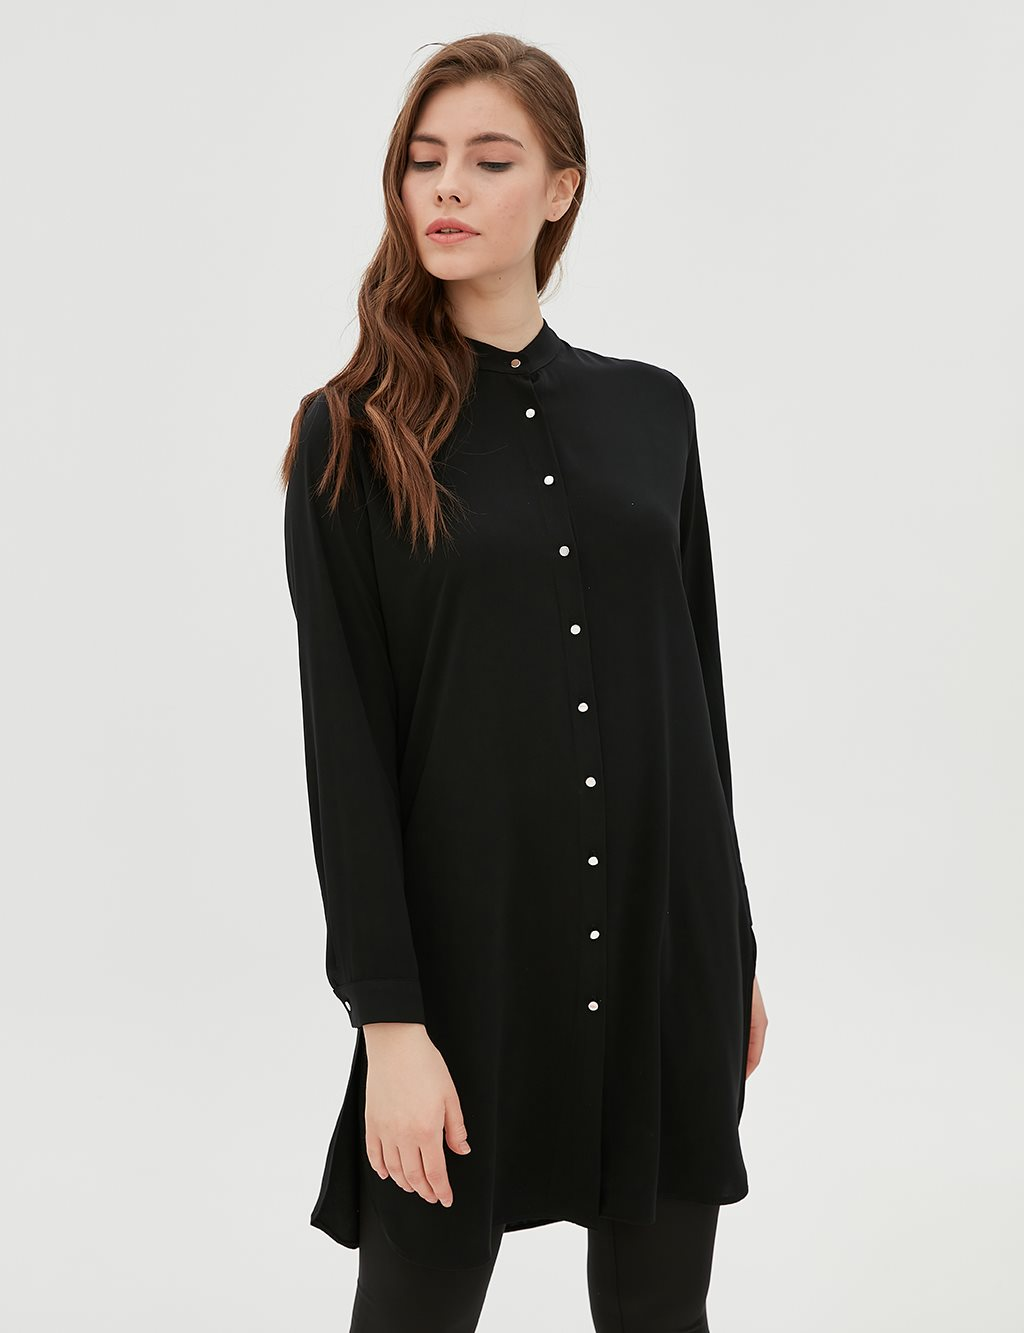 Tunic With Button SZ 21505 Black